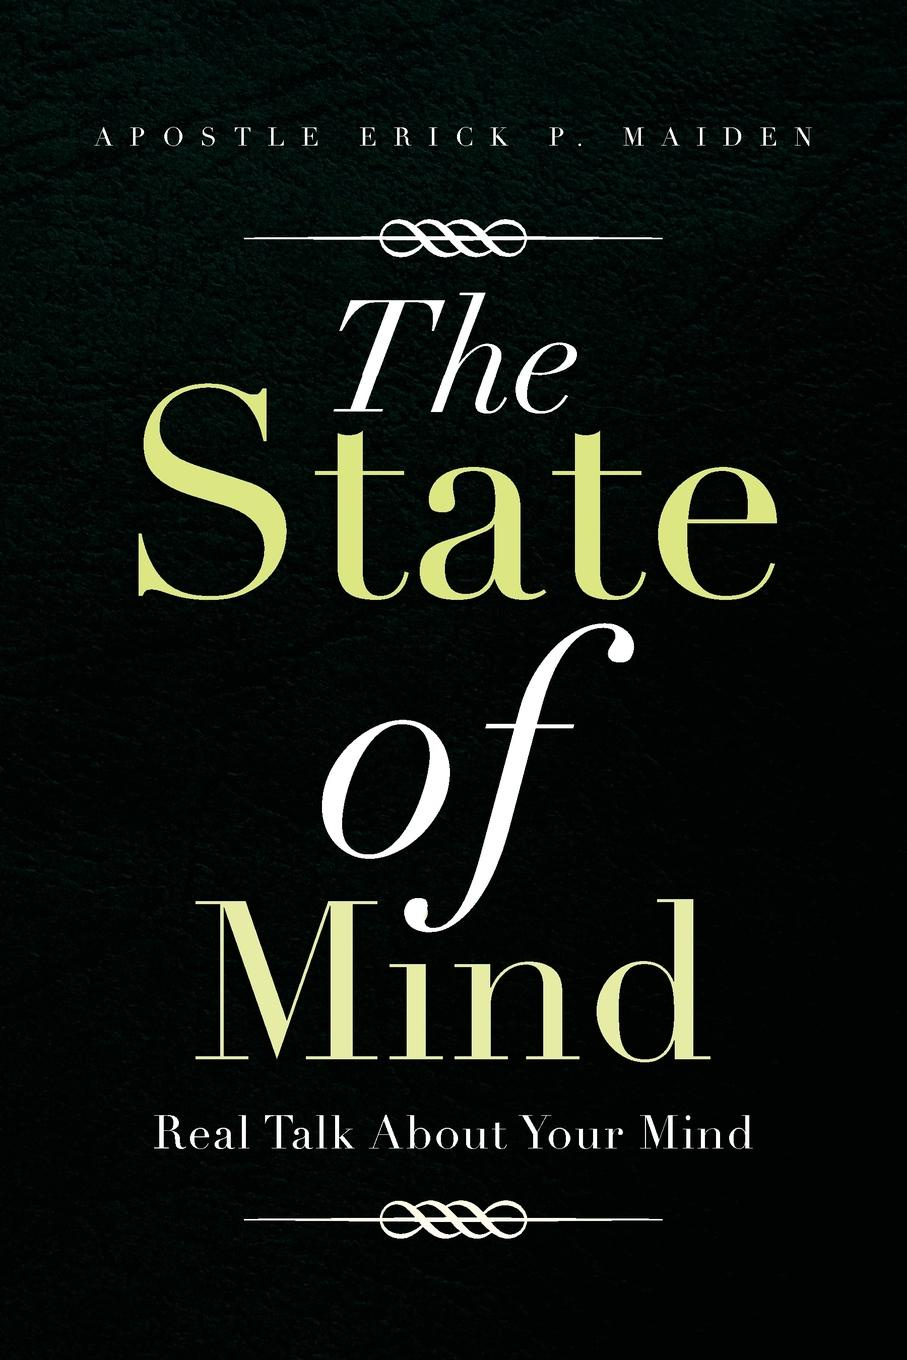 Apostle Erick P. Maiden The State of Mind. Real Talk about Your Mind mind over mind